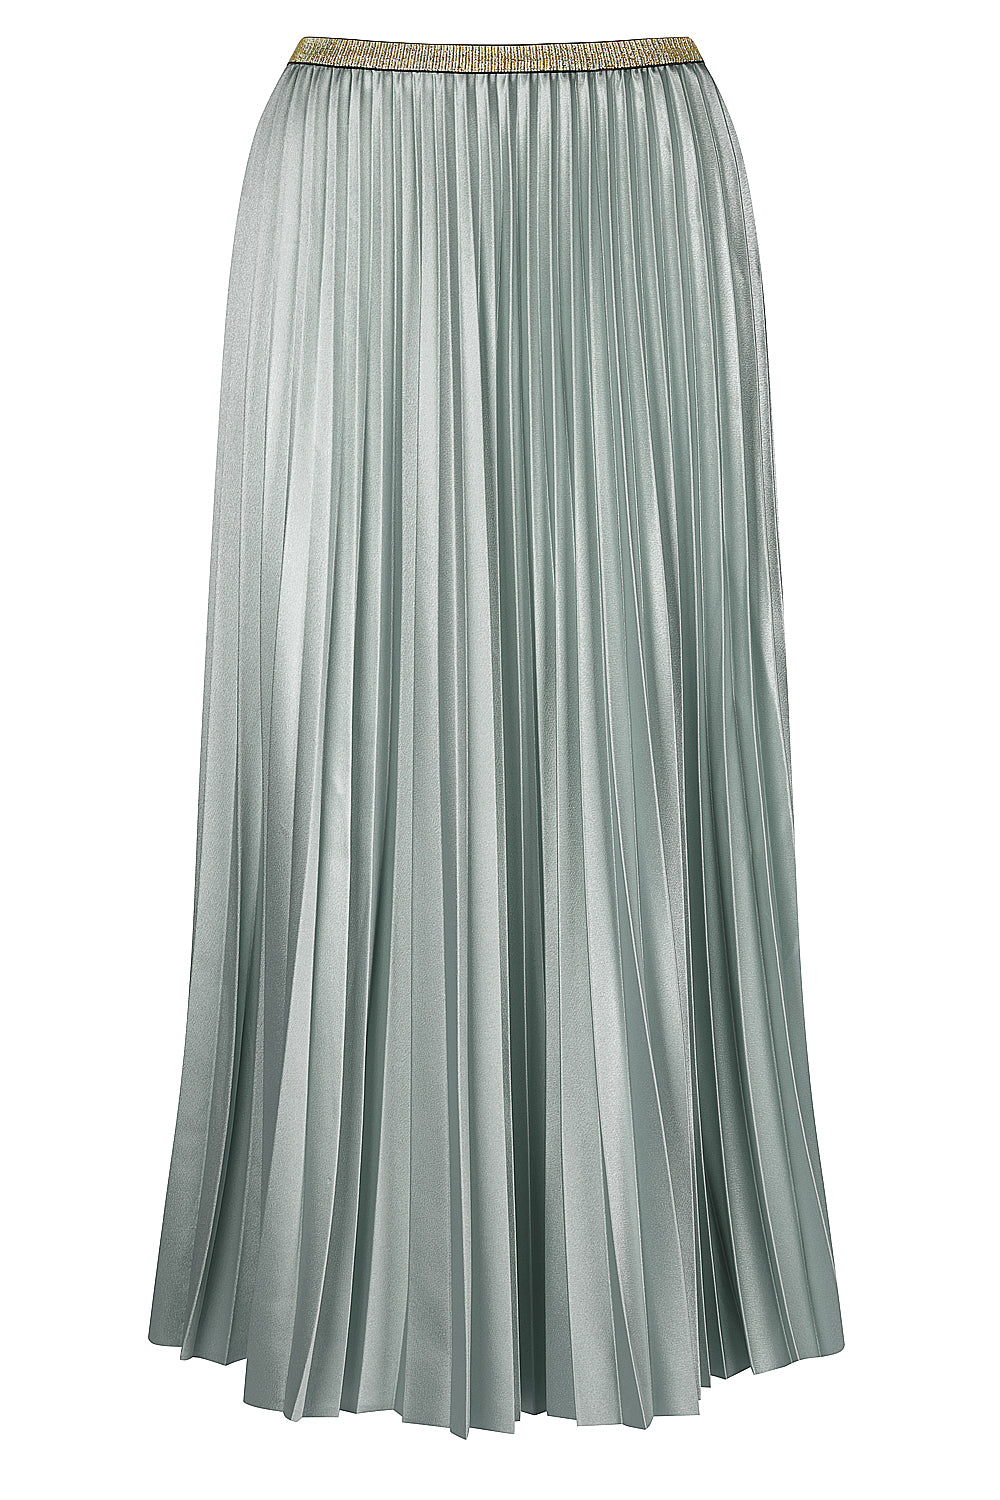 Bande Studio Pleated Satin Skirt - Frosty Green